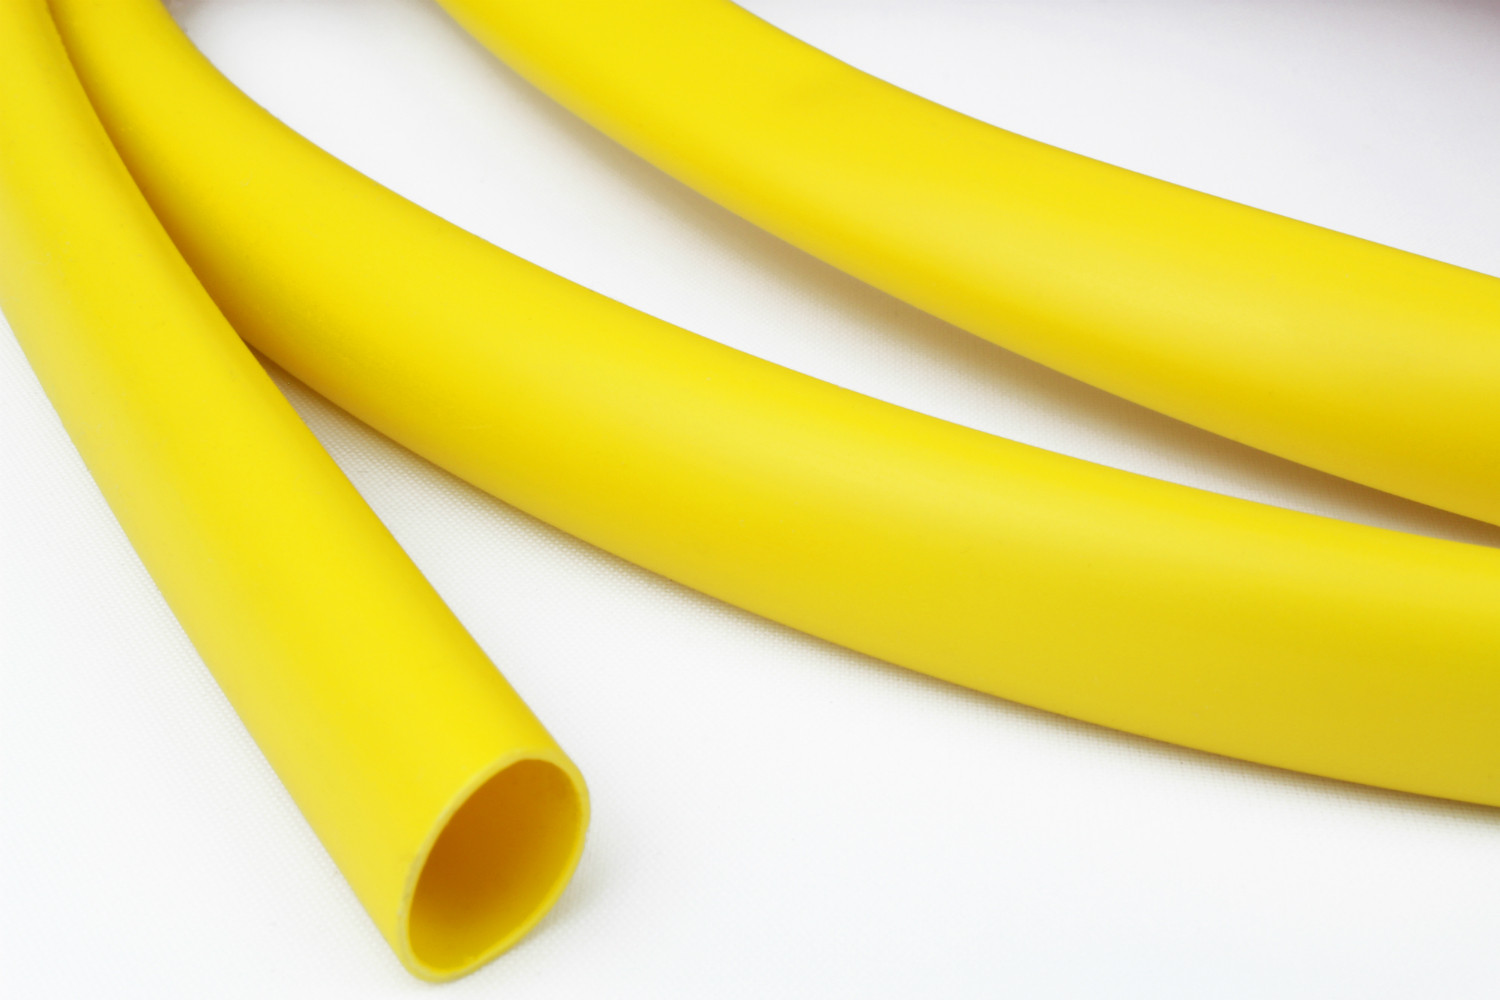 Yellow PVC Sleeving size 4.5mm